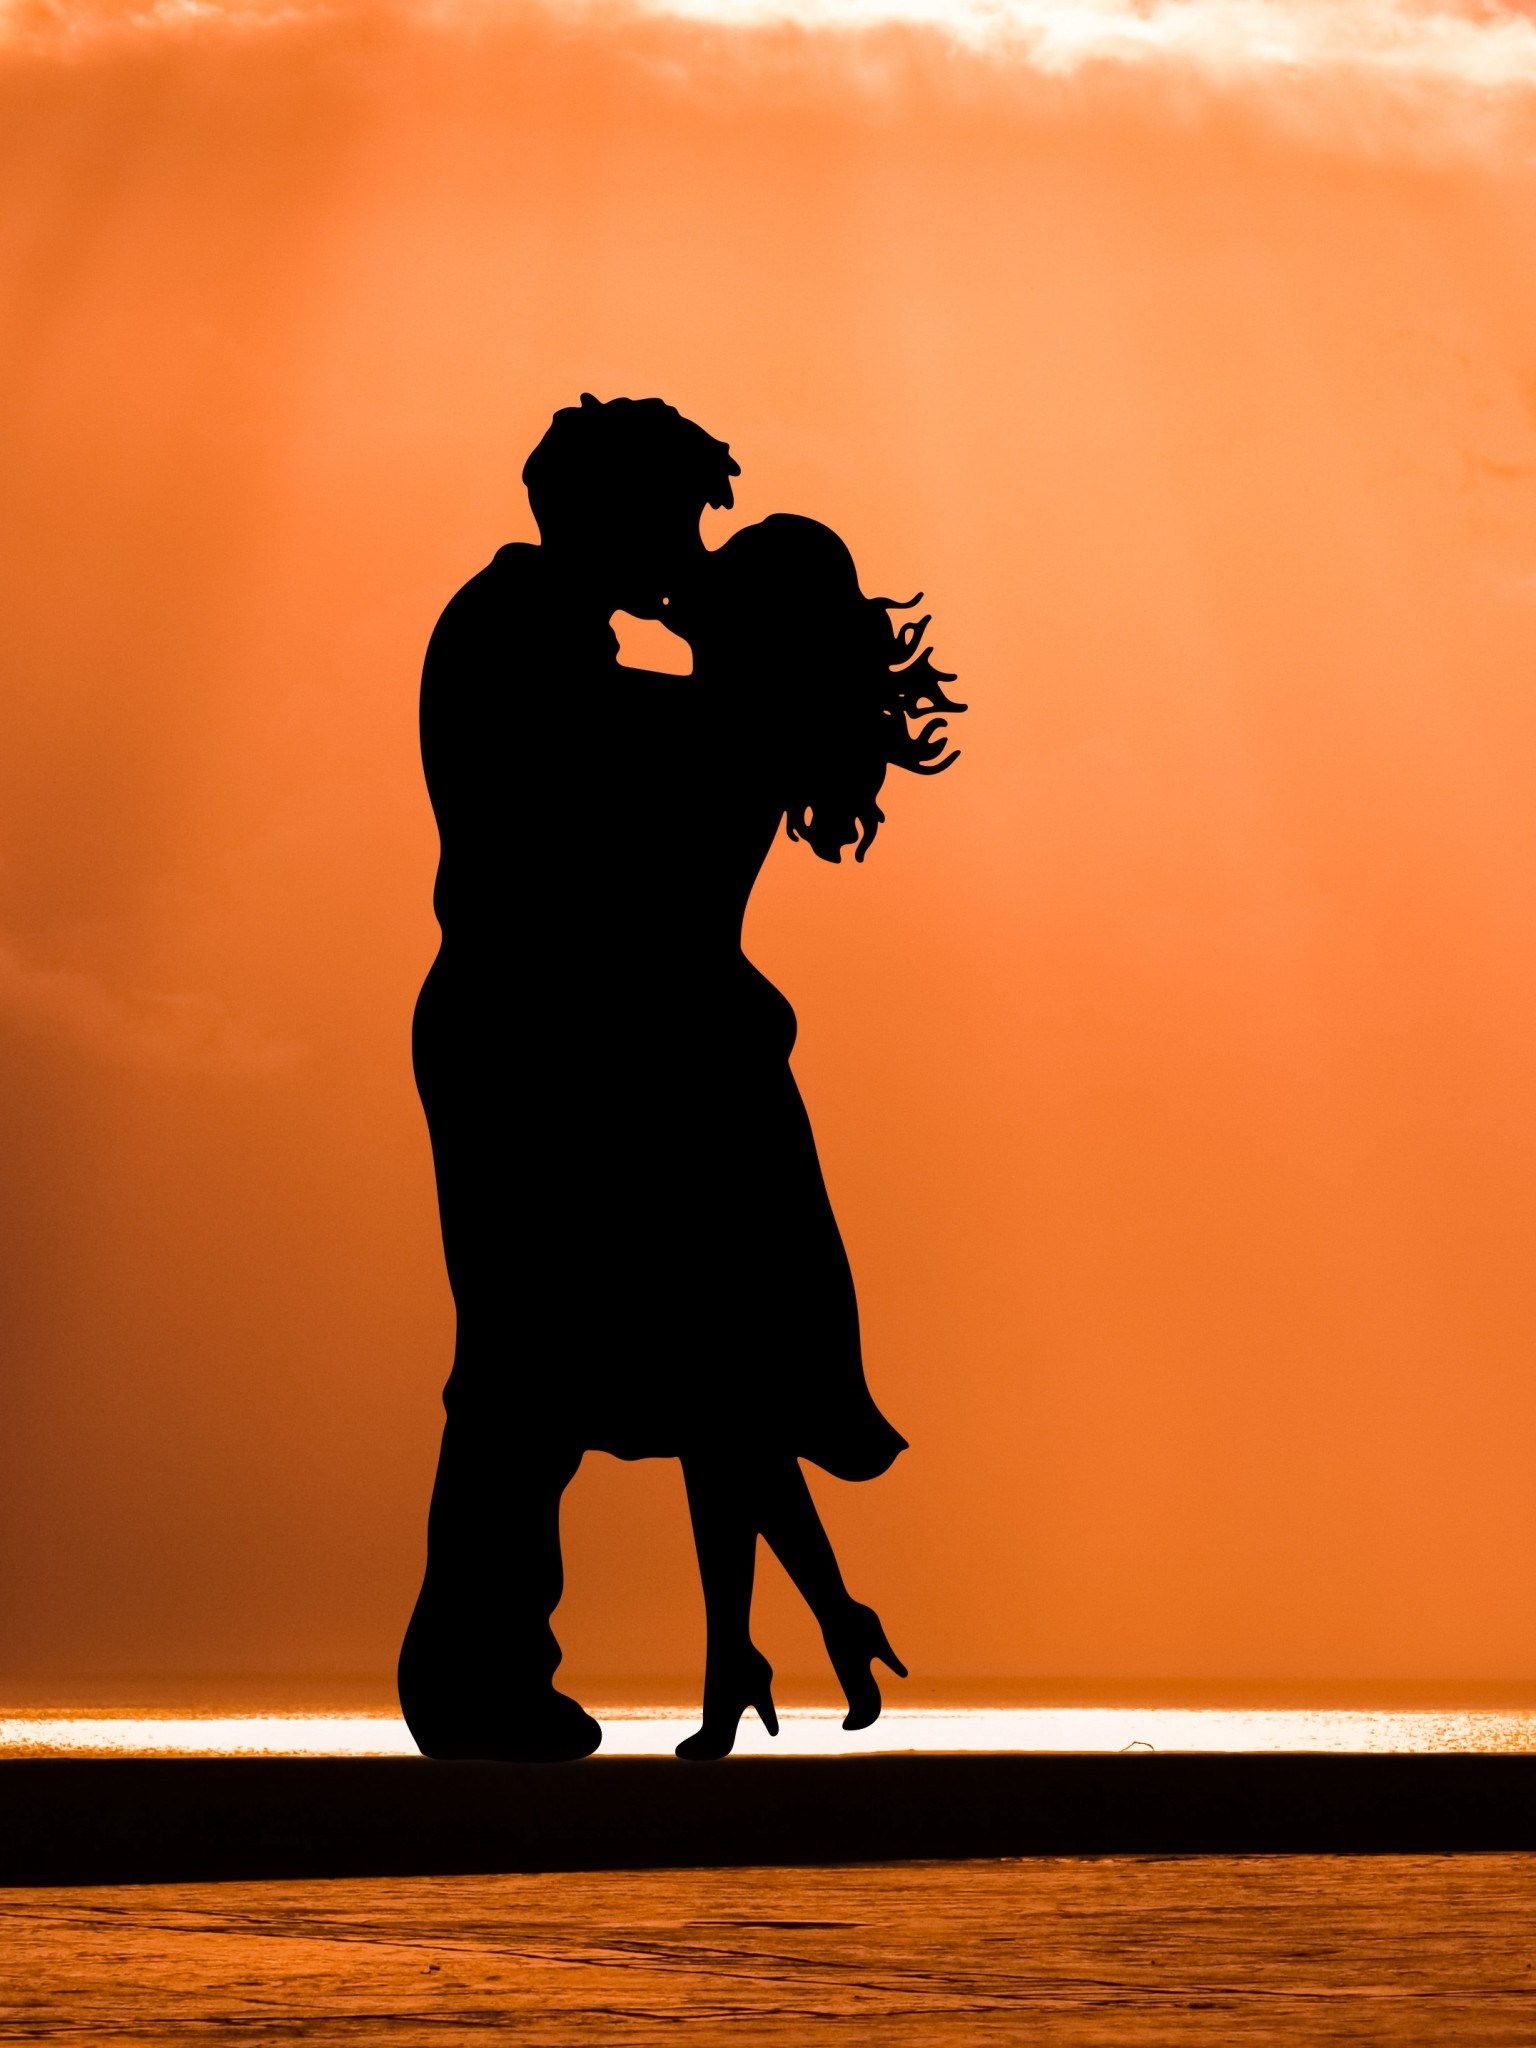 Wallpaper Kiss Couple Sunset Silhouette 5k Love - Romantic Quotes , HD Wallpaper & Backgrounds